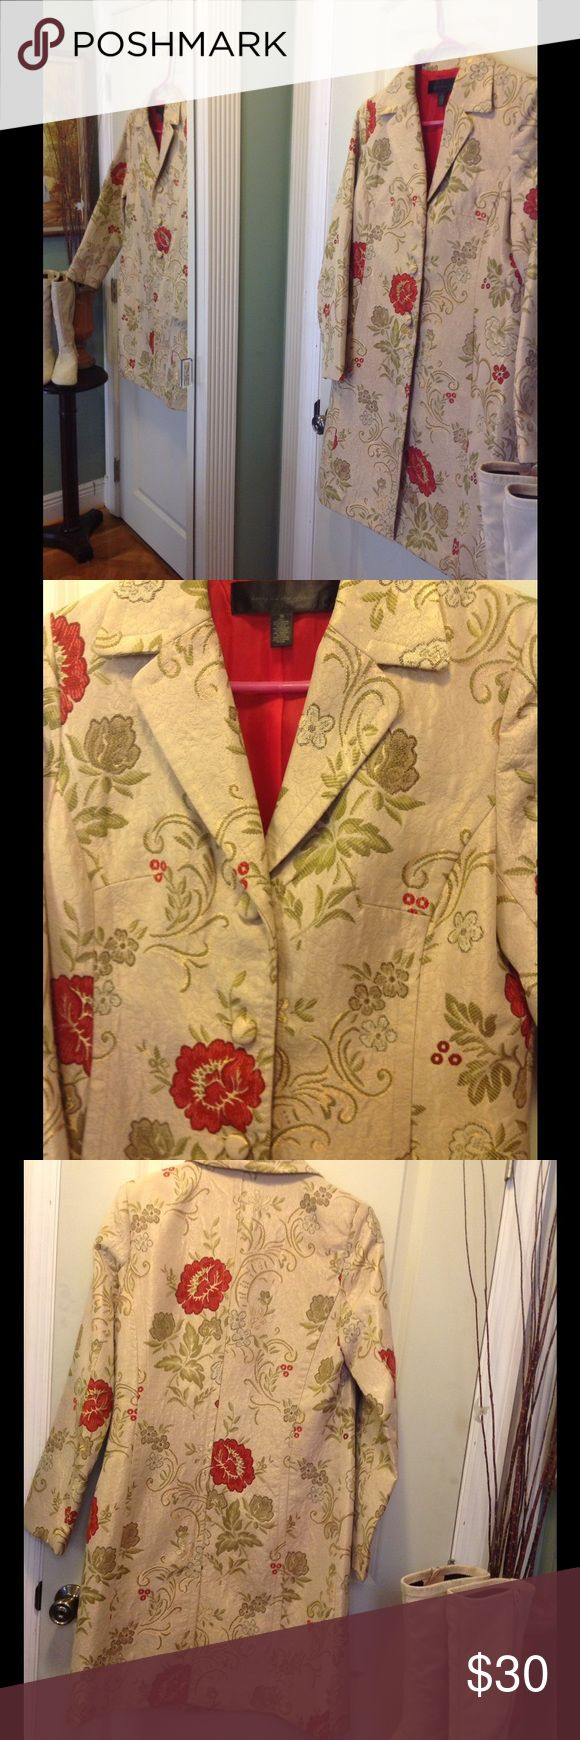 "Asian tapestry gorgeous long jacket Gorgeous gold/green/red Asian tapestry long jacket. In size 10 by apostrophe  60%polyester and 40%rayon. Fully lined in red satin   Bust measures 19""x2. Waist 18""x2. 2 pockets. 3 covered button details with pleated look on front for slimming effect 37"" long sleeves 25"" Apostrophe Jackets & Coats Pea Coats"